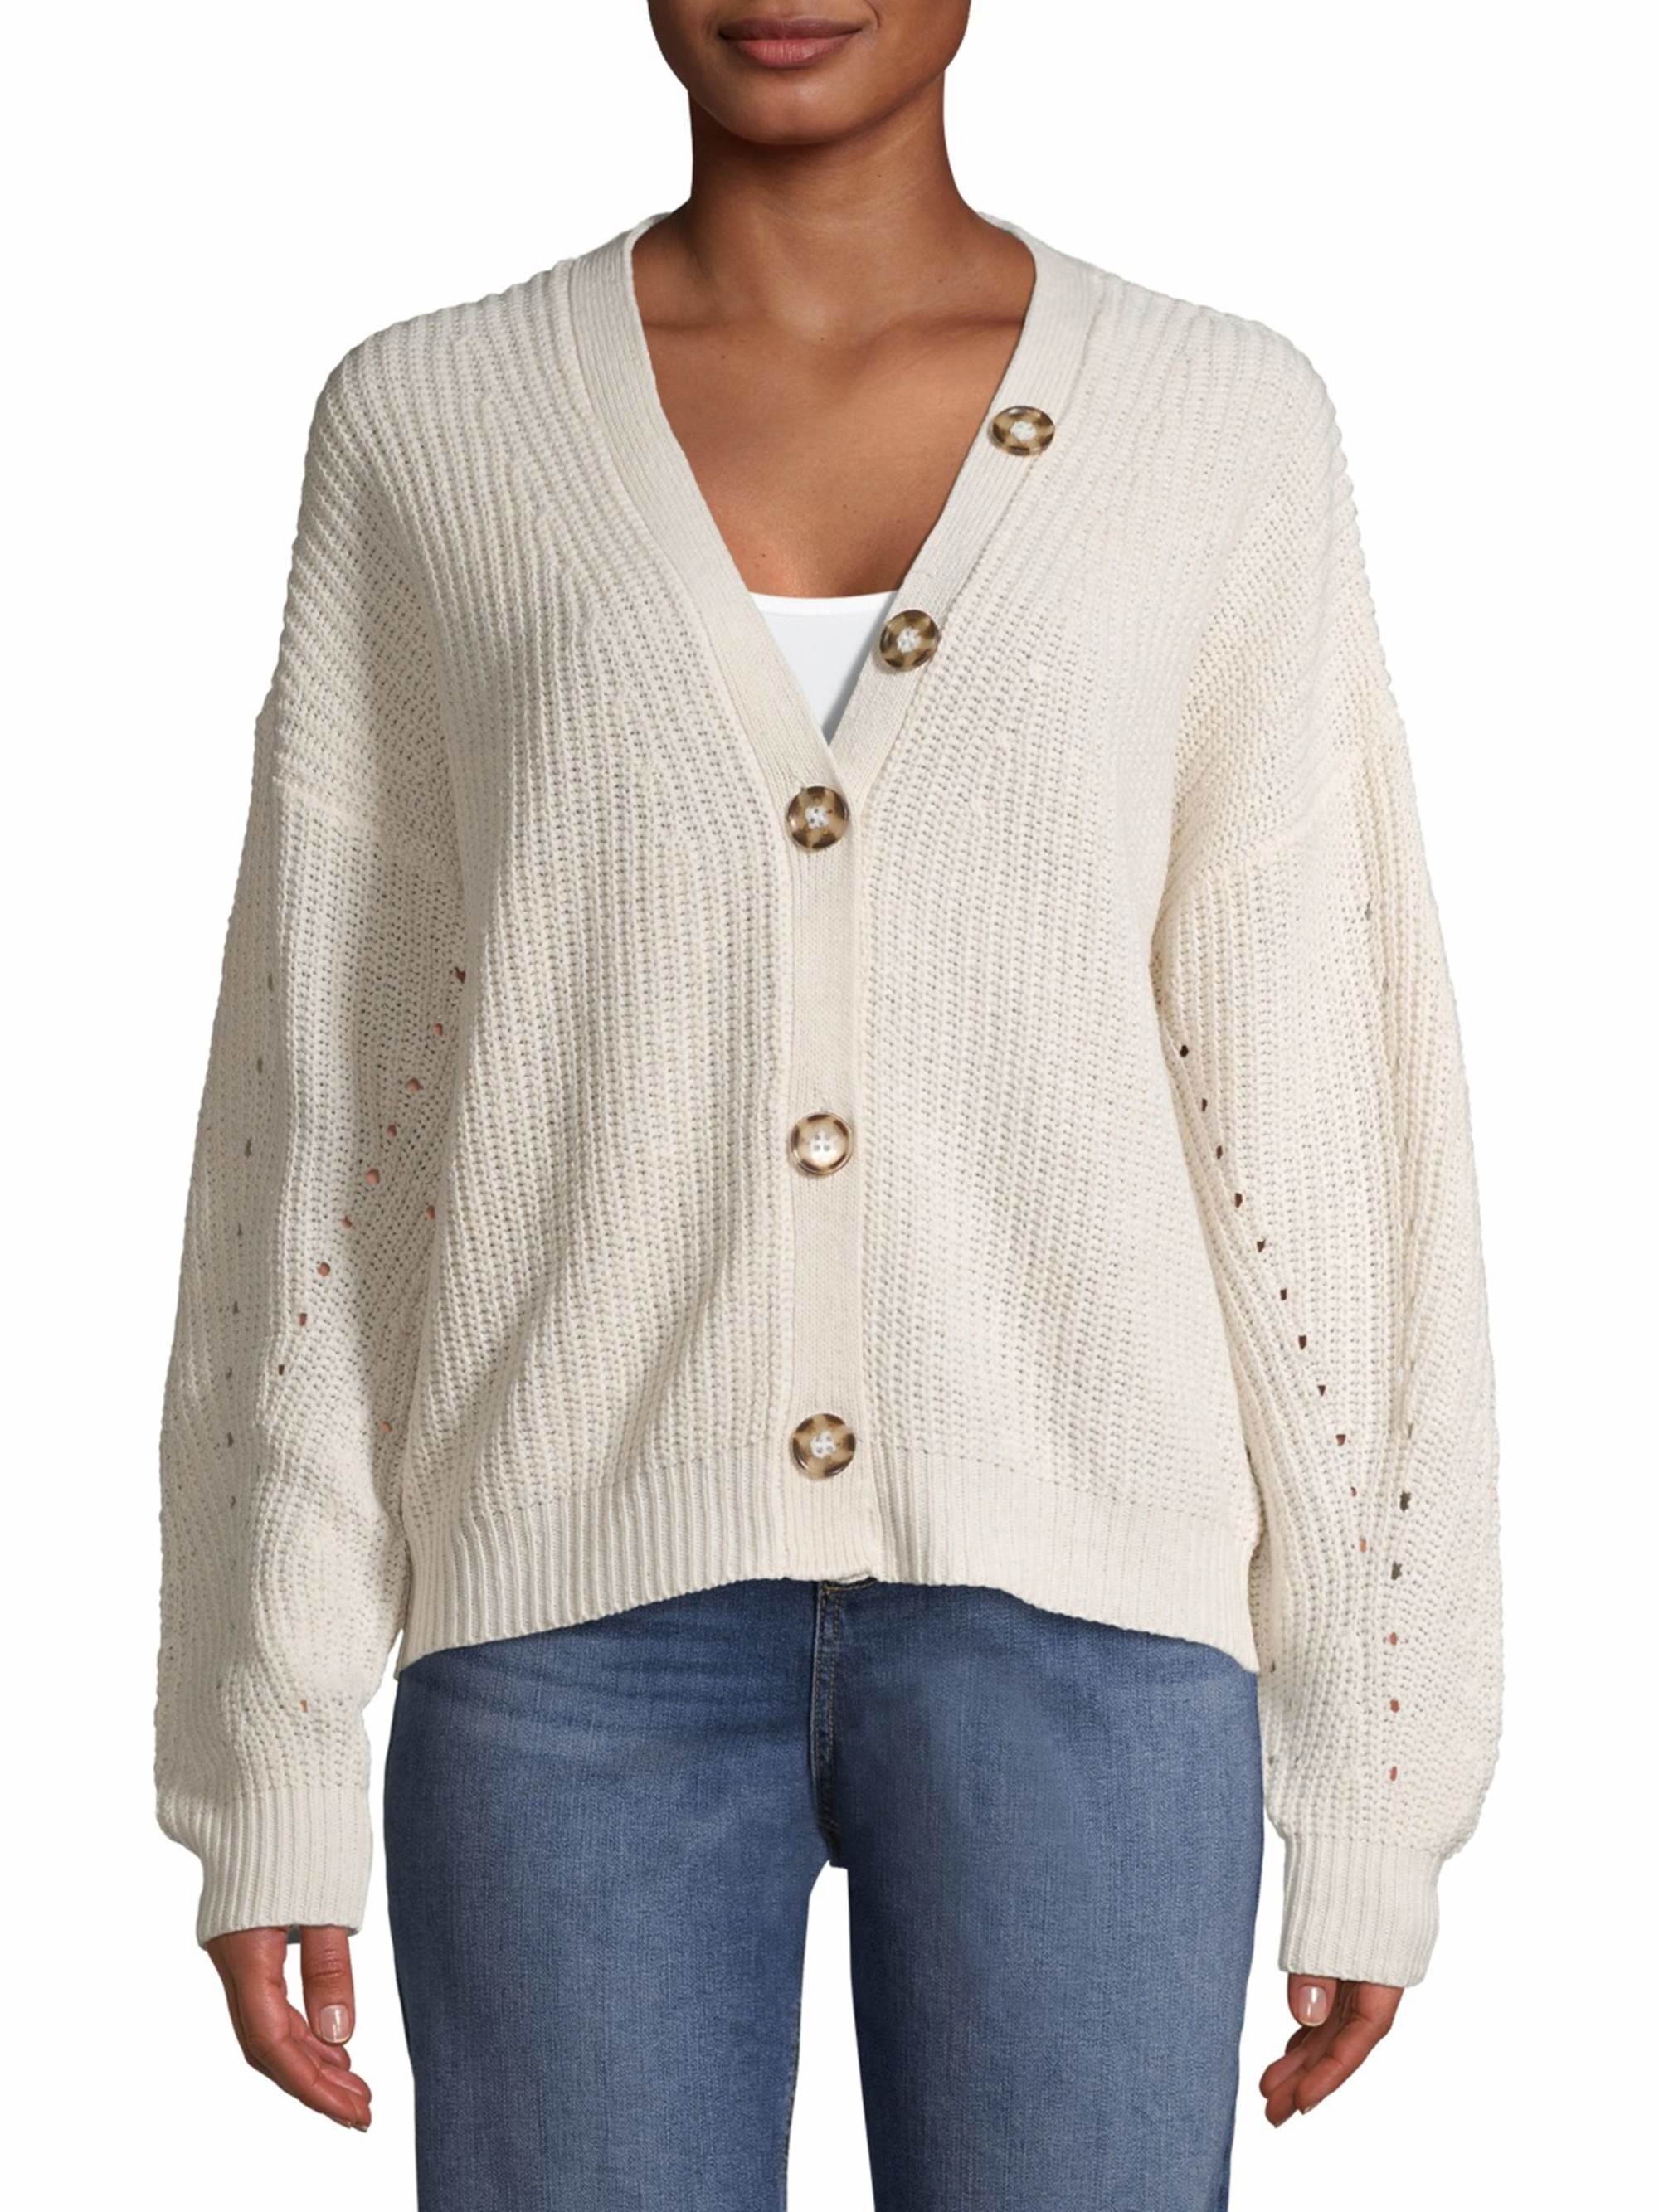 the cardigan in white